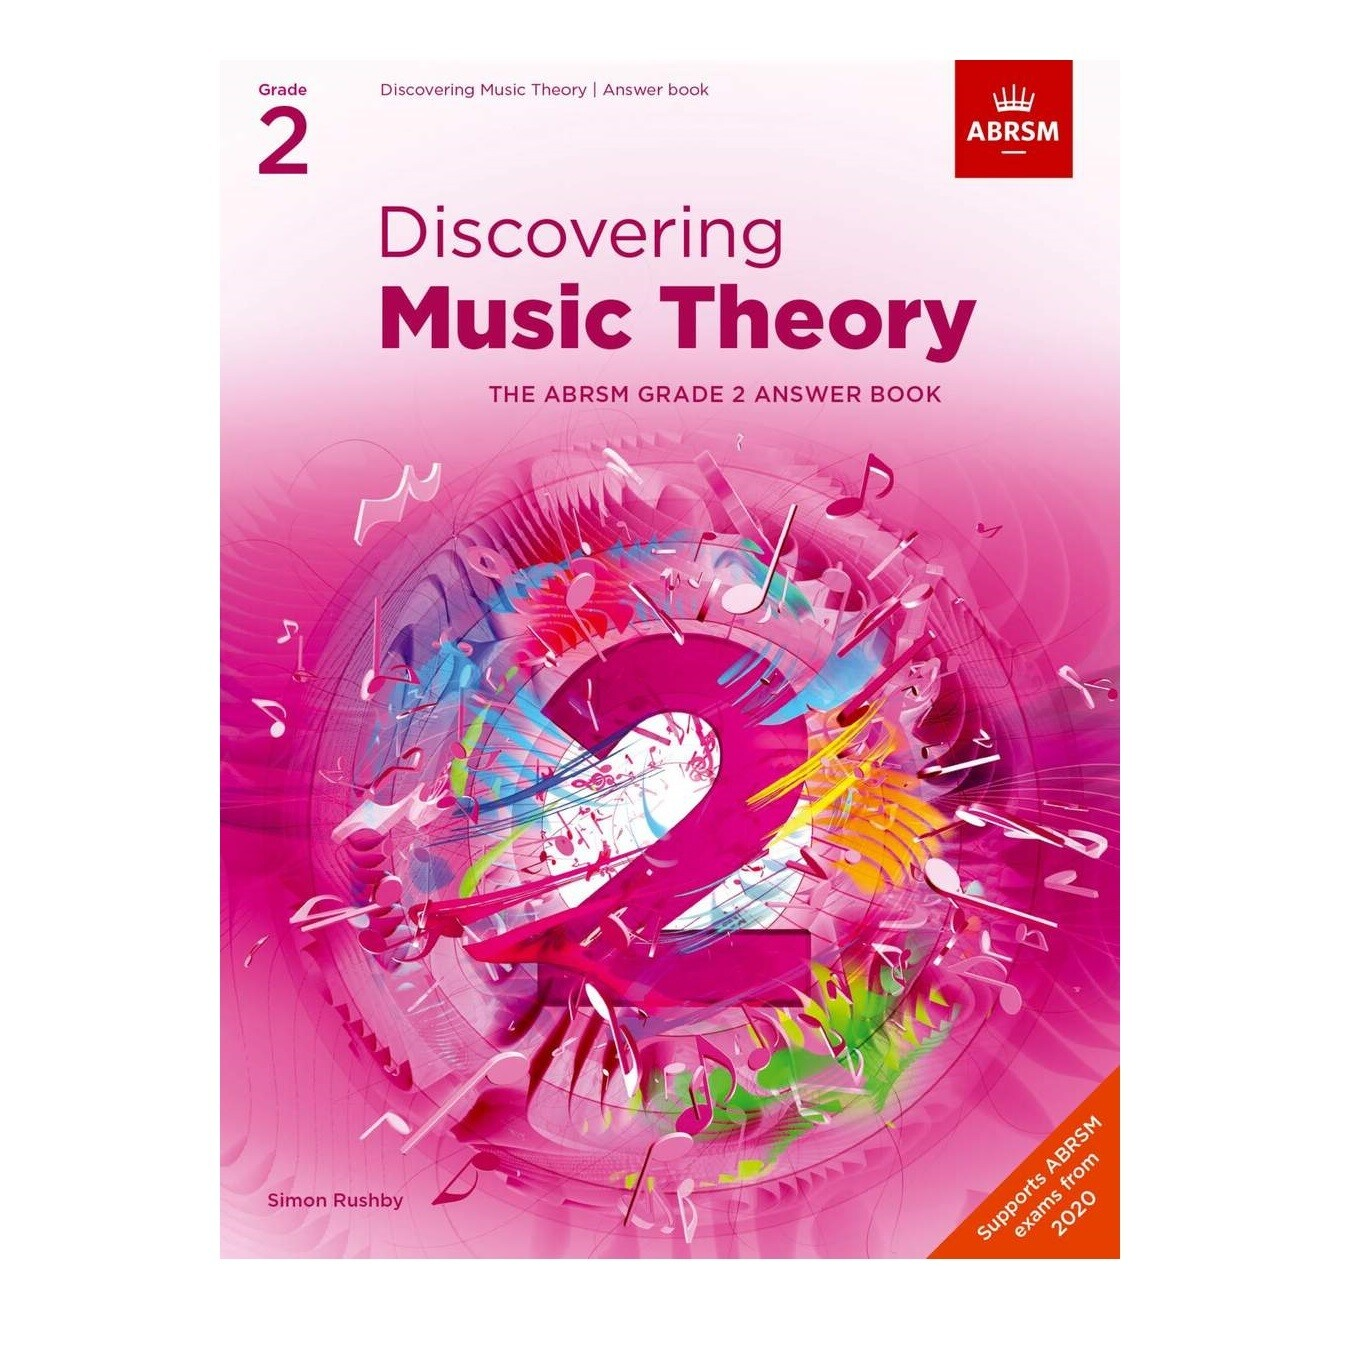 ABRSM Discovering Music Theory Answer Book -  Grade 2